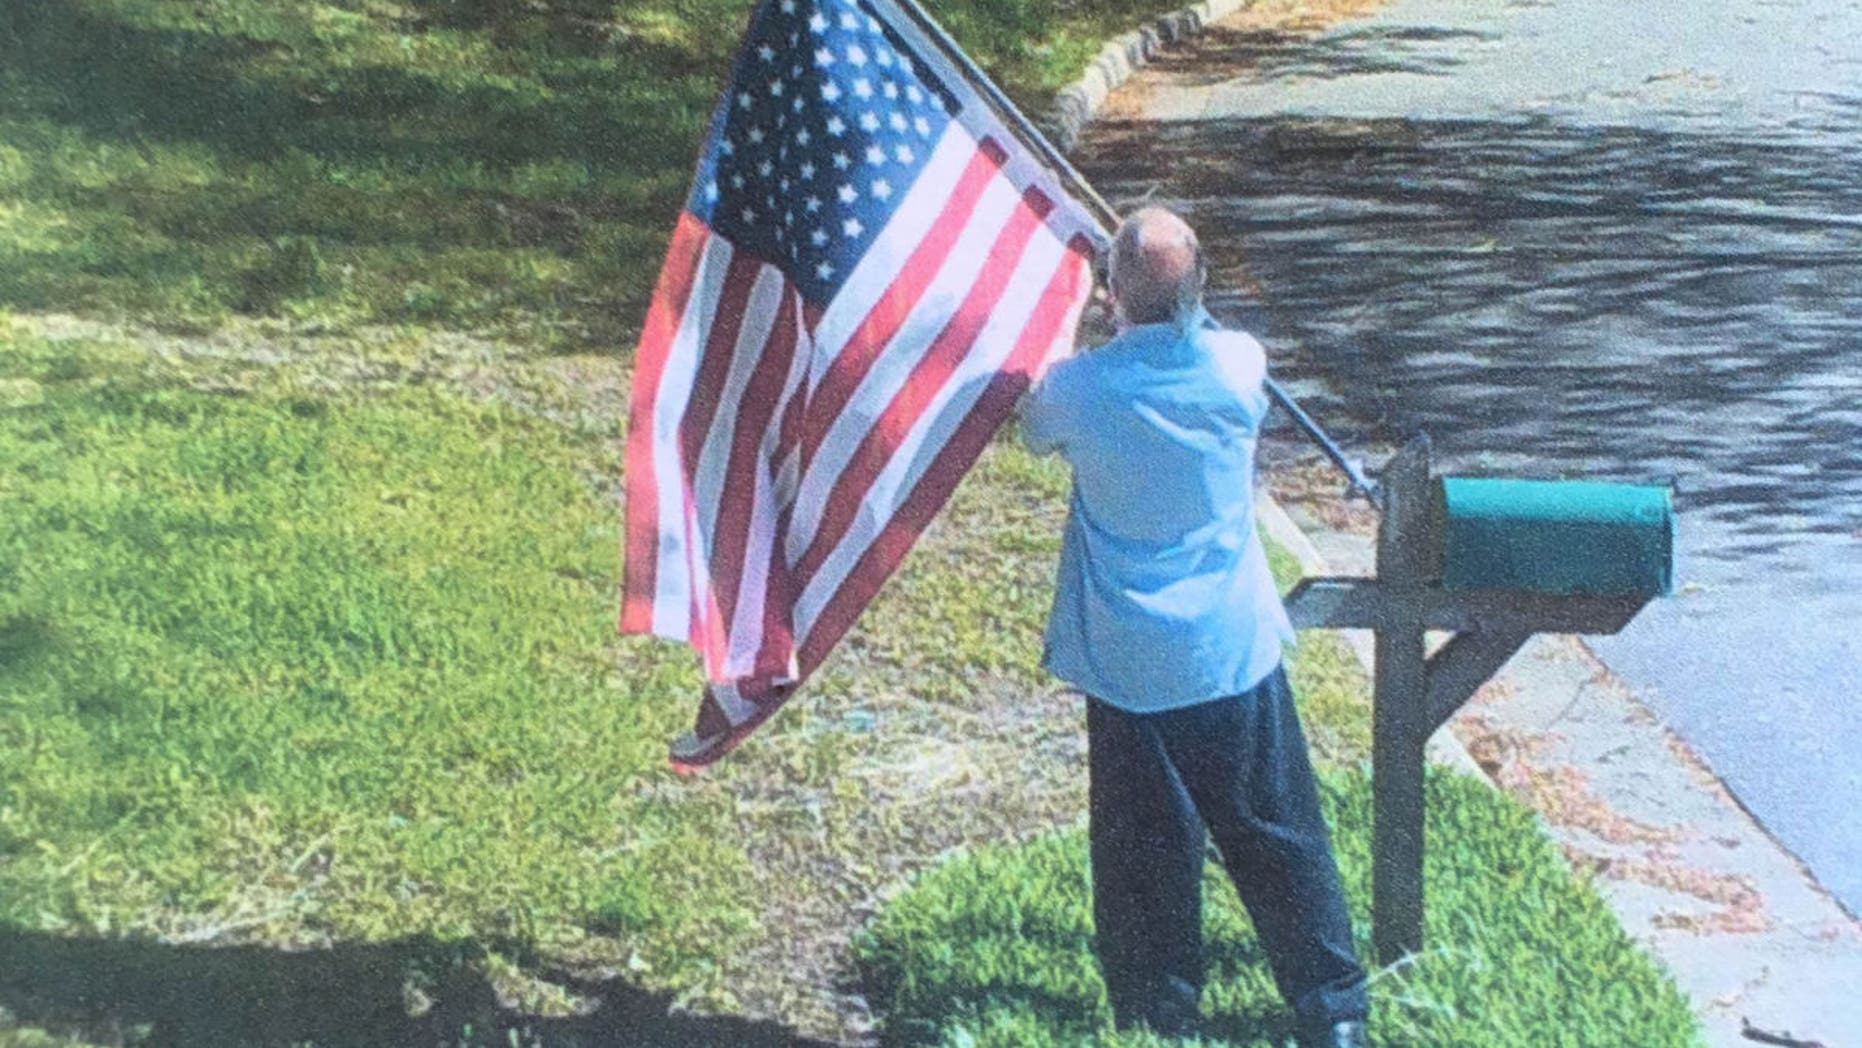 Anderson submitted evidence showing Parmele taking the flag.